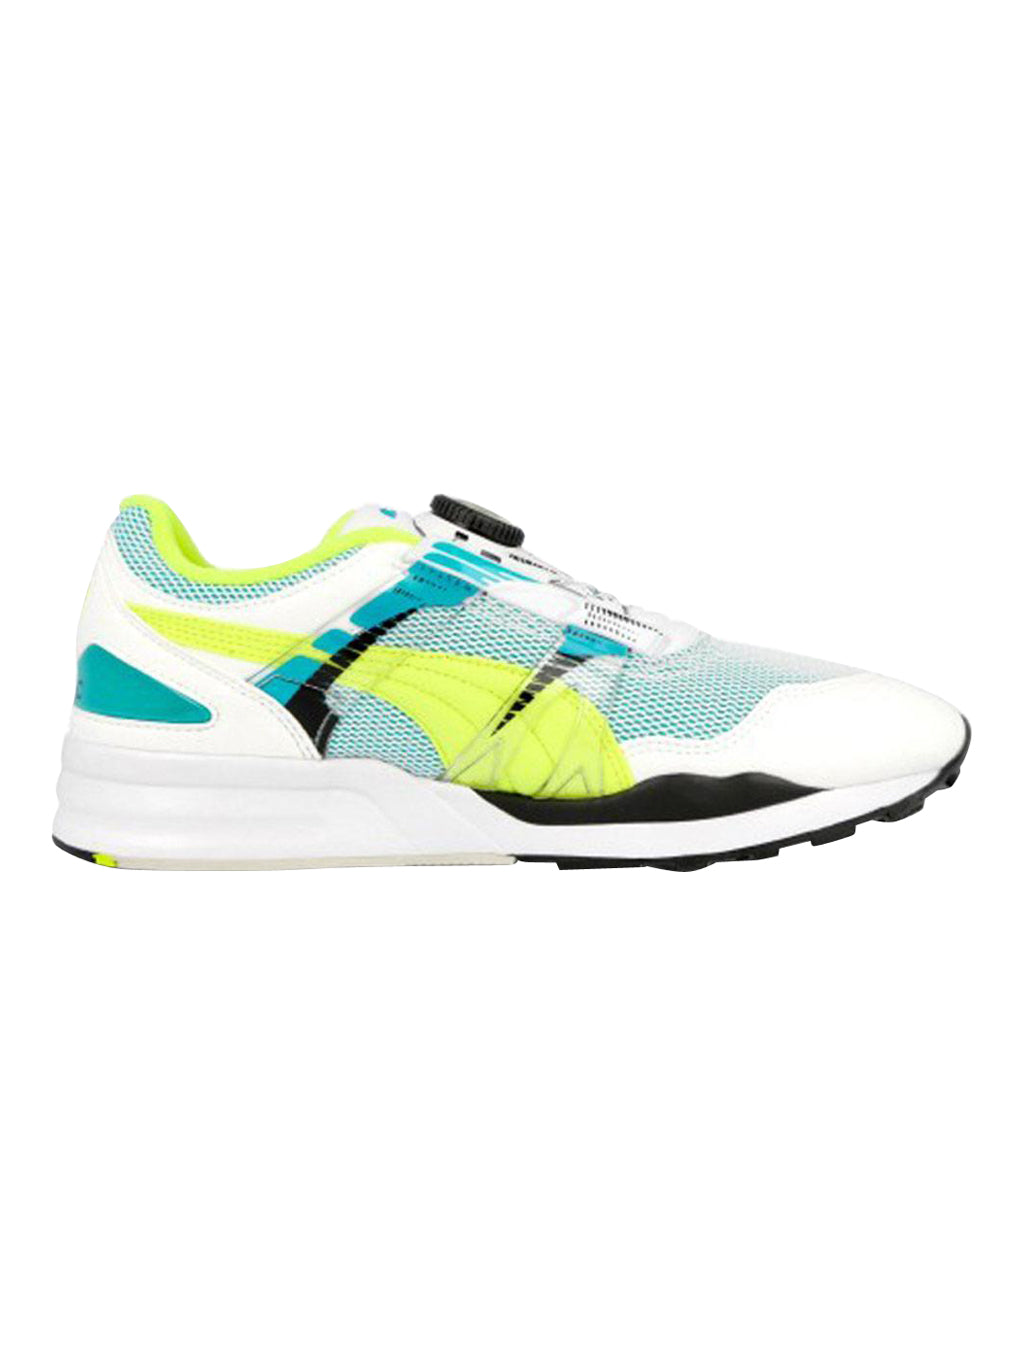 Capri Breeze & Puma White XS 7000 OG Sneakers